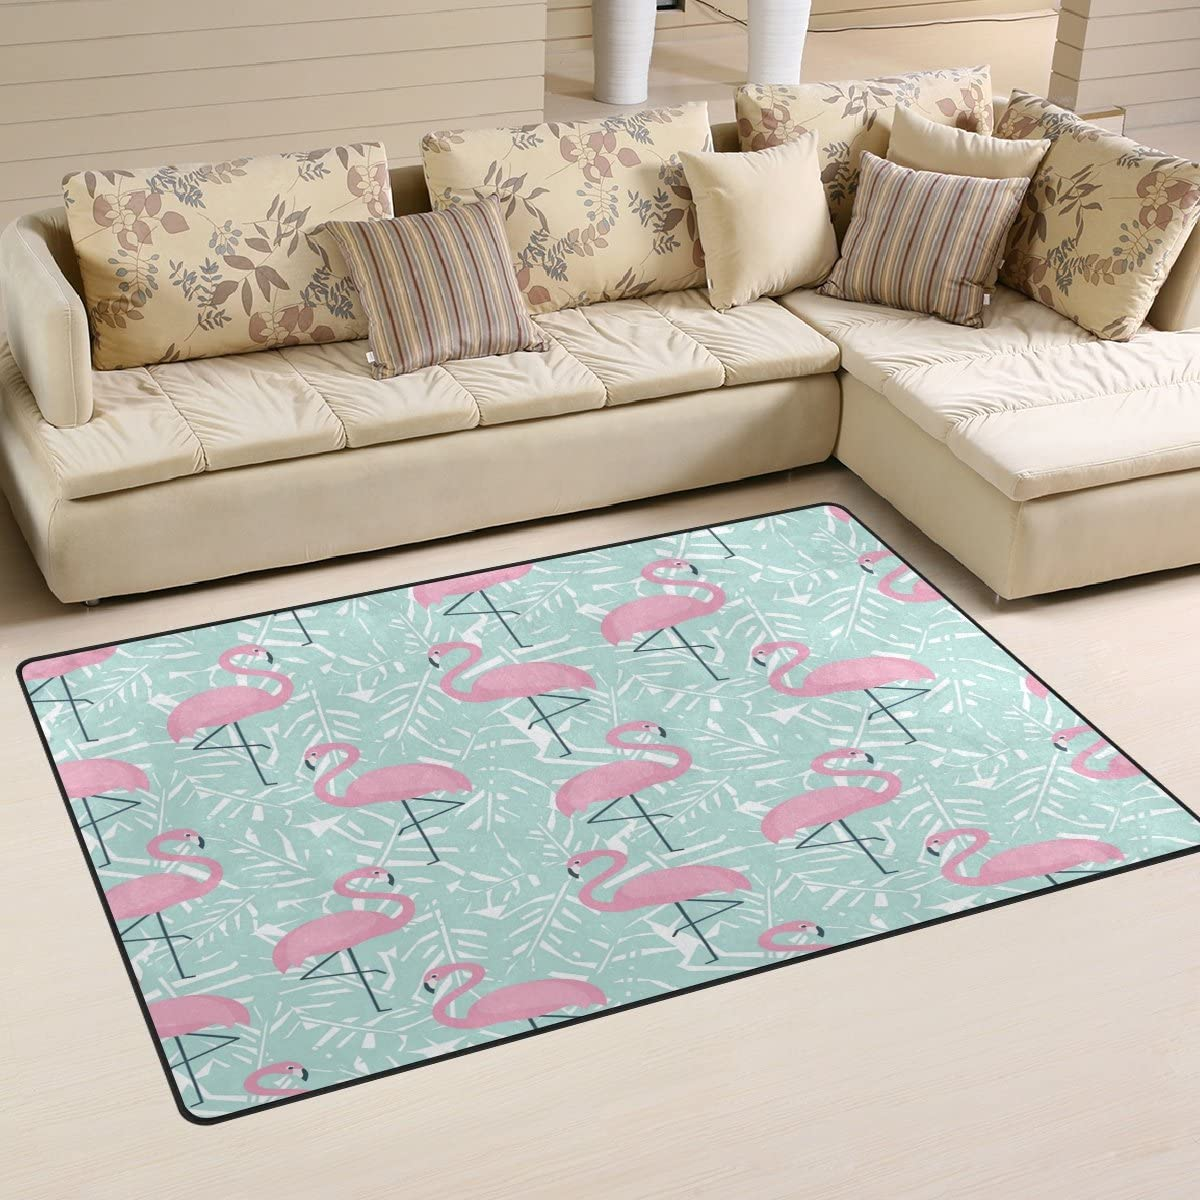 WOZO Tropical Palm Tree Leaves Pink Flamingo Area Rug Rugs Non-Slip Floor Mat Doormat